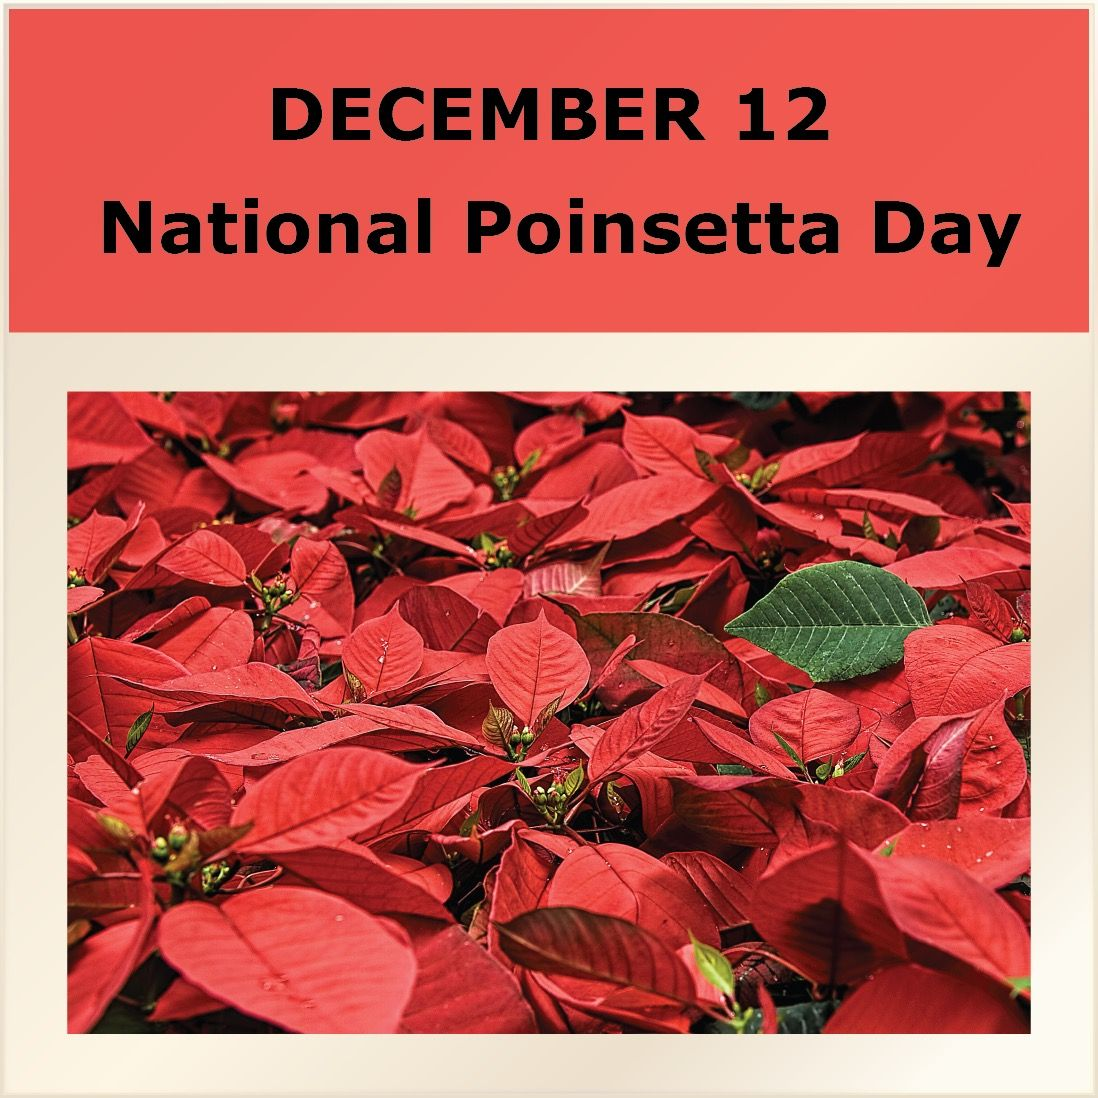 Dec 12 National Poinsettia Day Did You Know Poinsettias Could Make Dogs And Cats Sick Celebratethelittlethings Poinsetti Christmas Plants Poinsettia Day